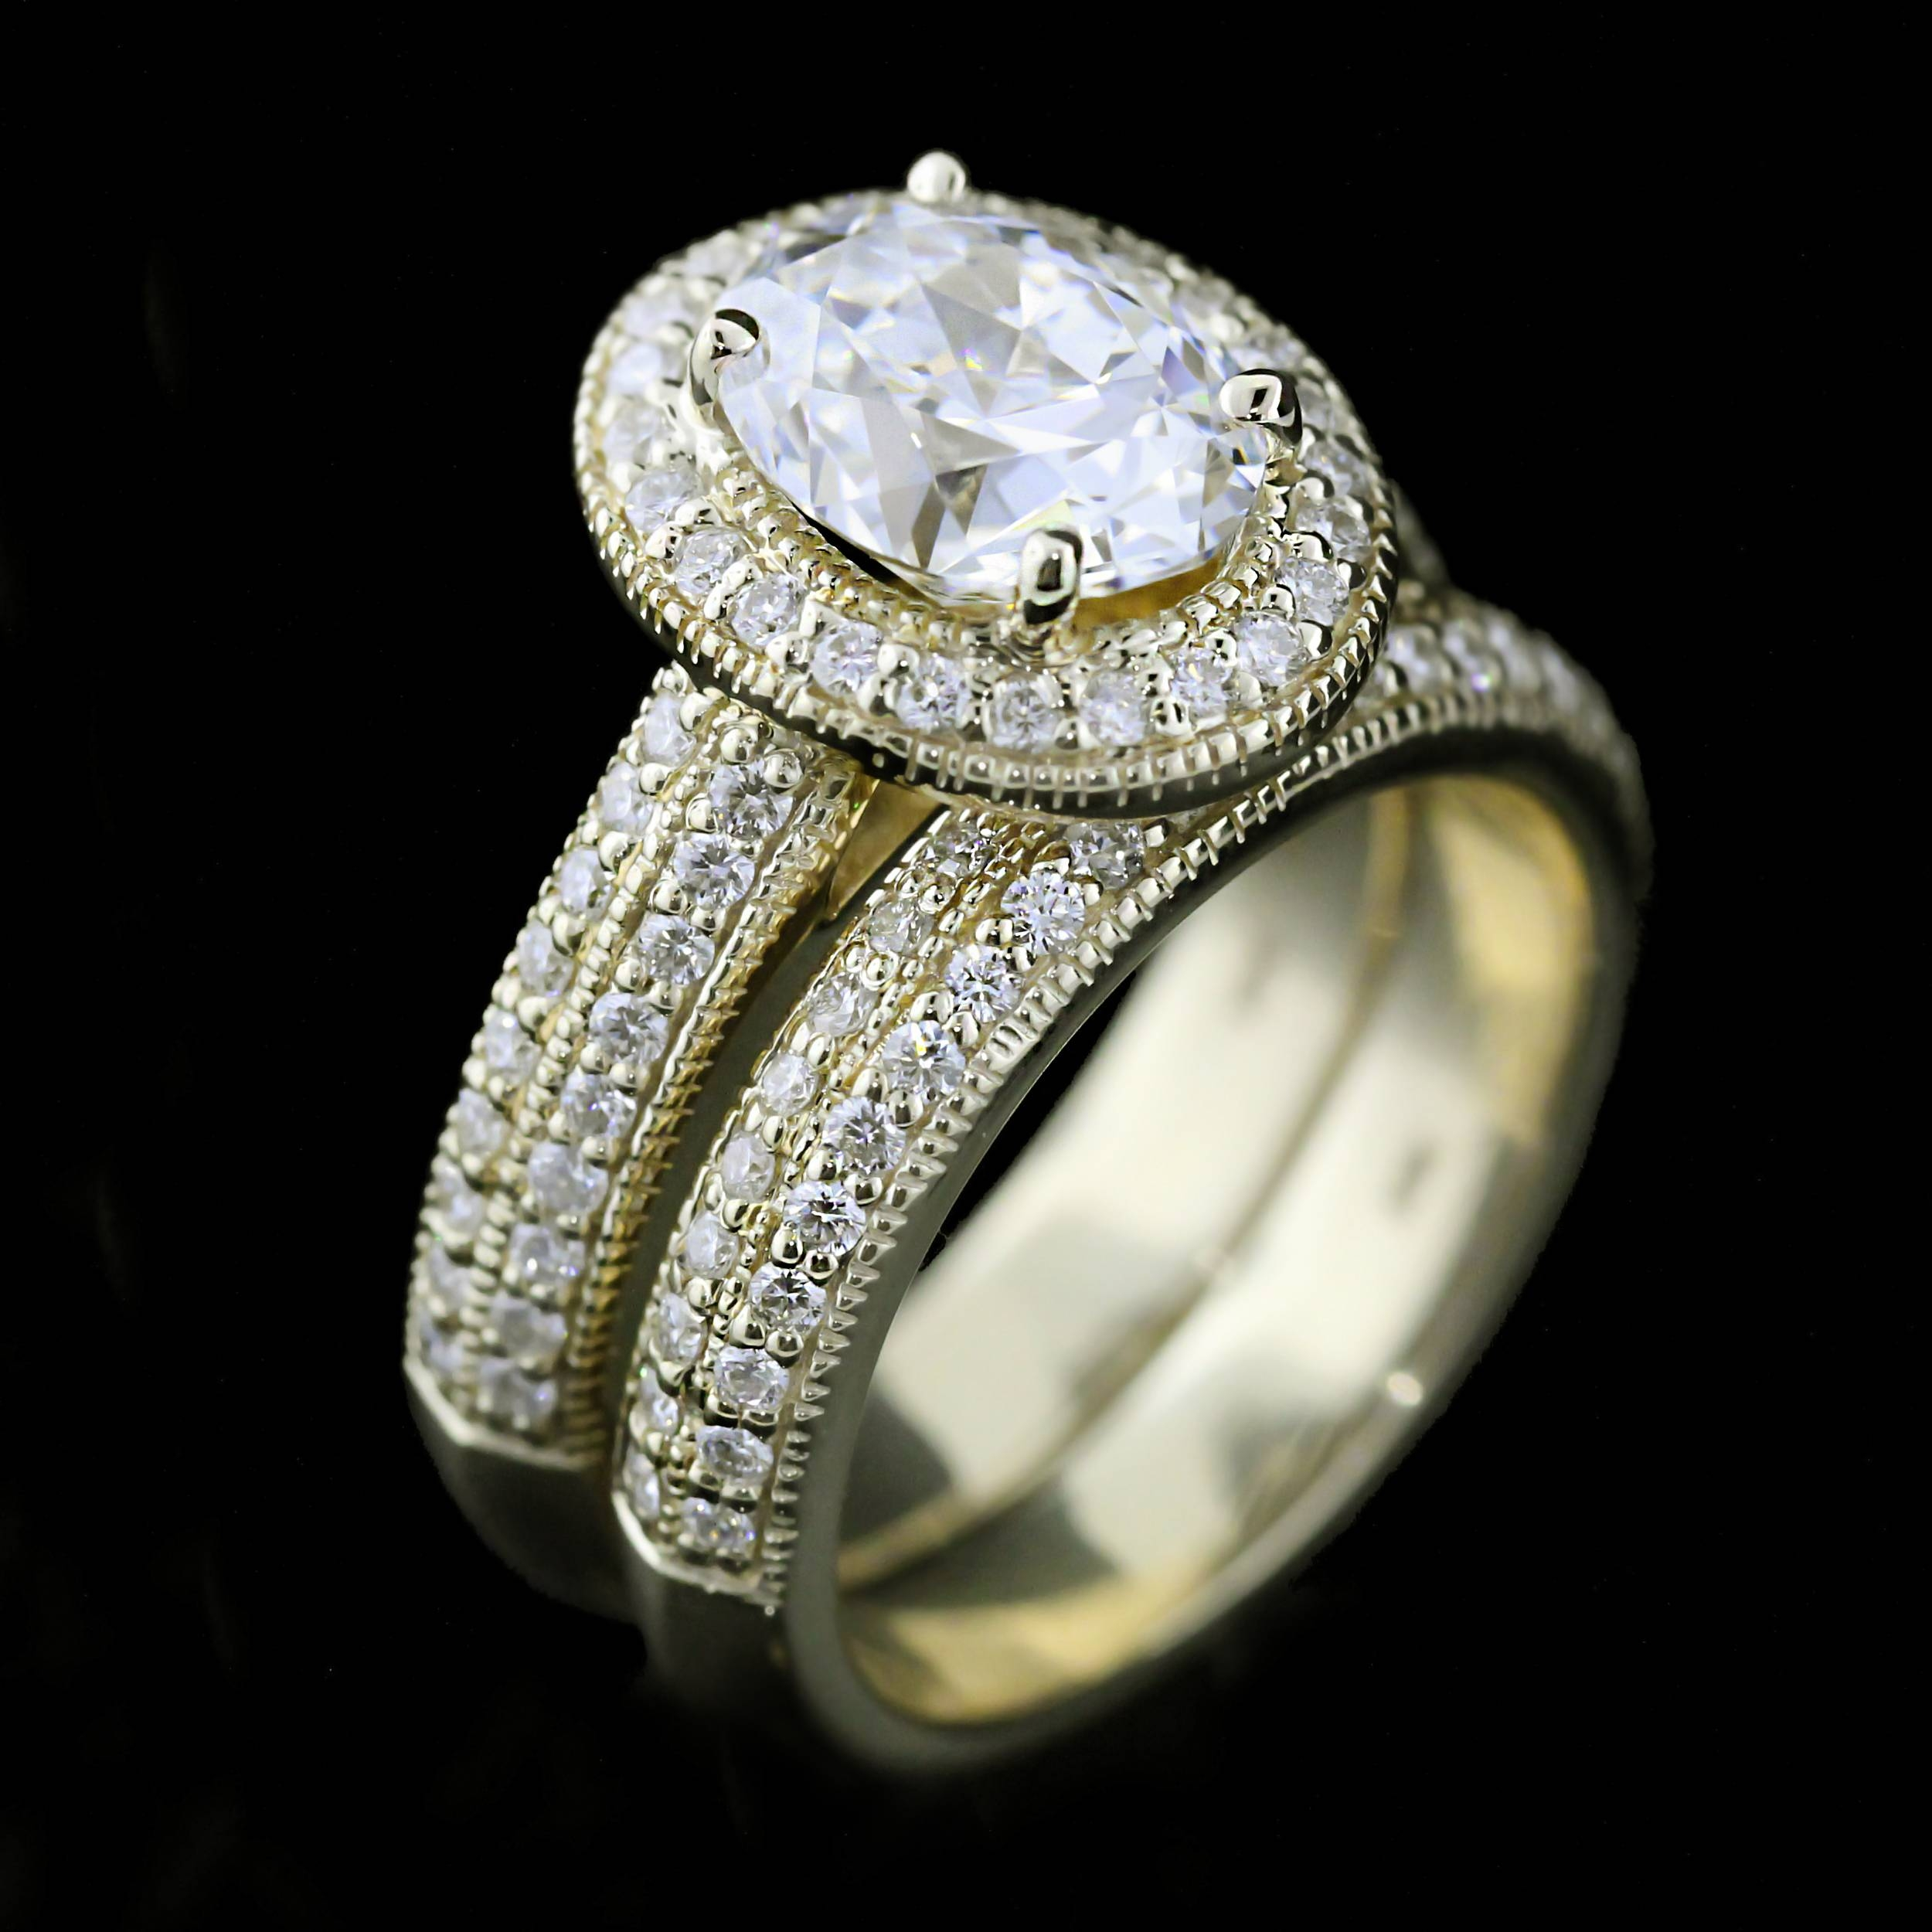 jewelry engagement free accent stone product today created gold shipping sapphire white watches miadora ring rings and miadonna overstock diamond